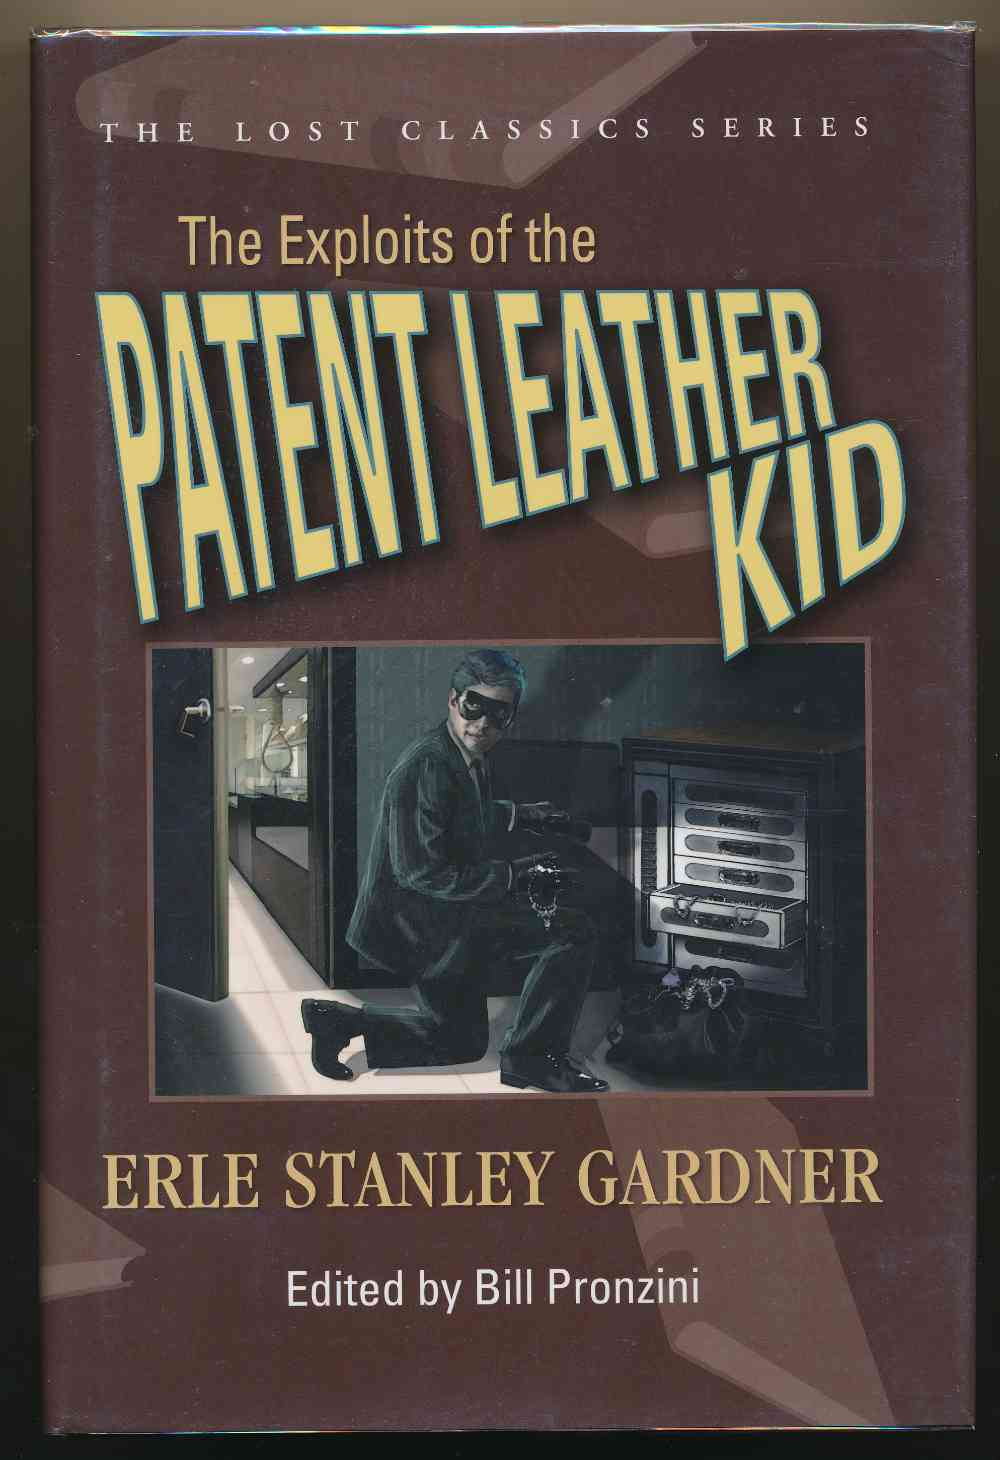 The exploits of the Patent Leather Kid